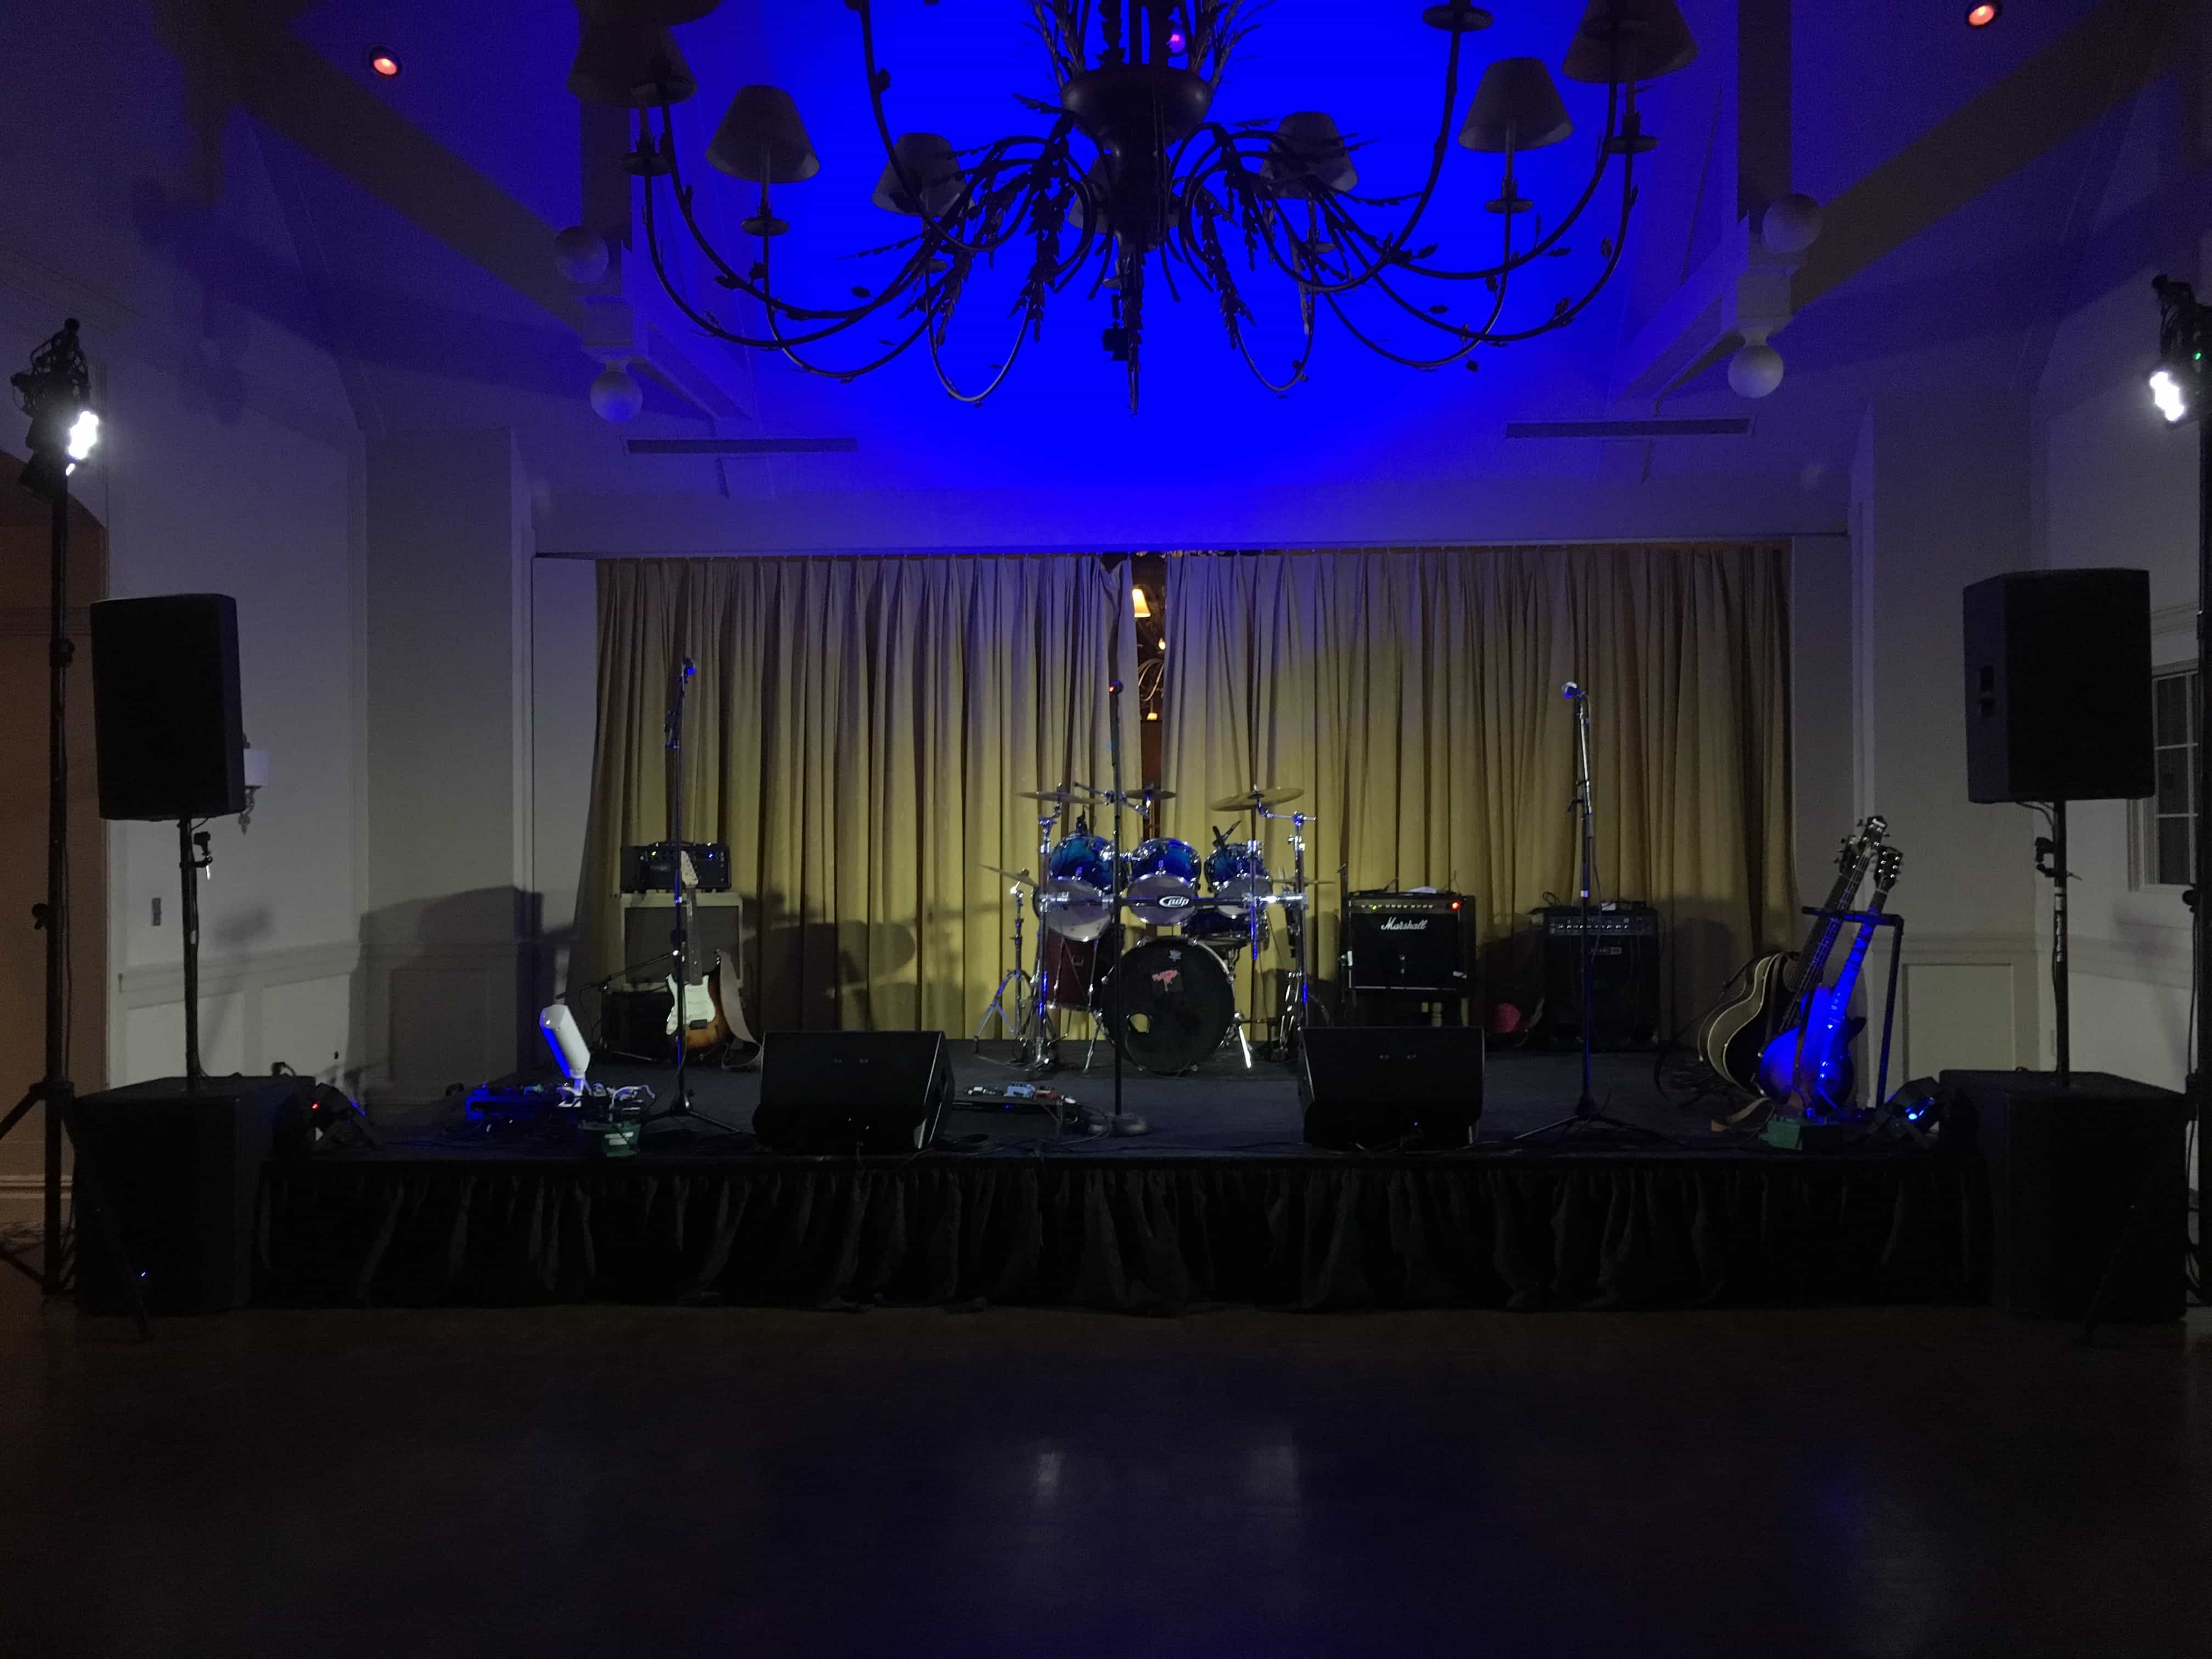 event production services in nj